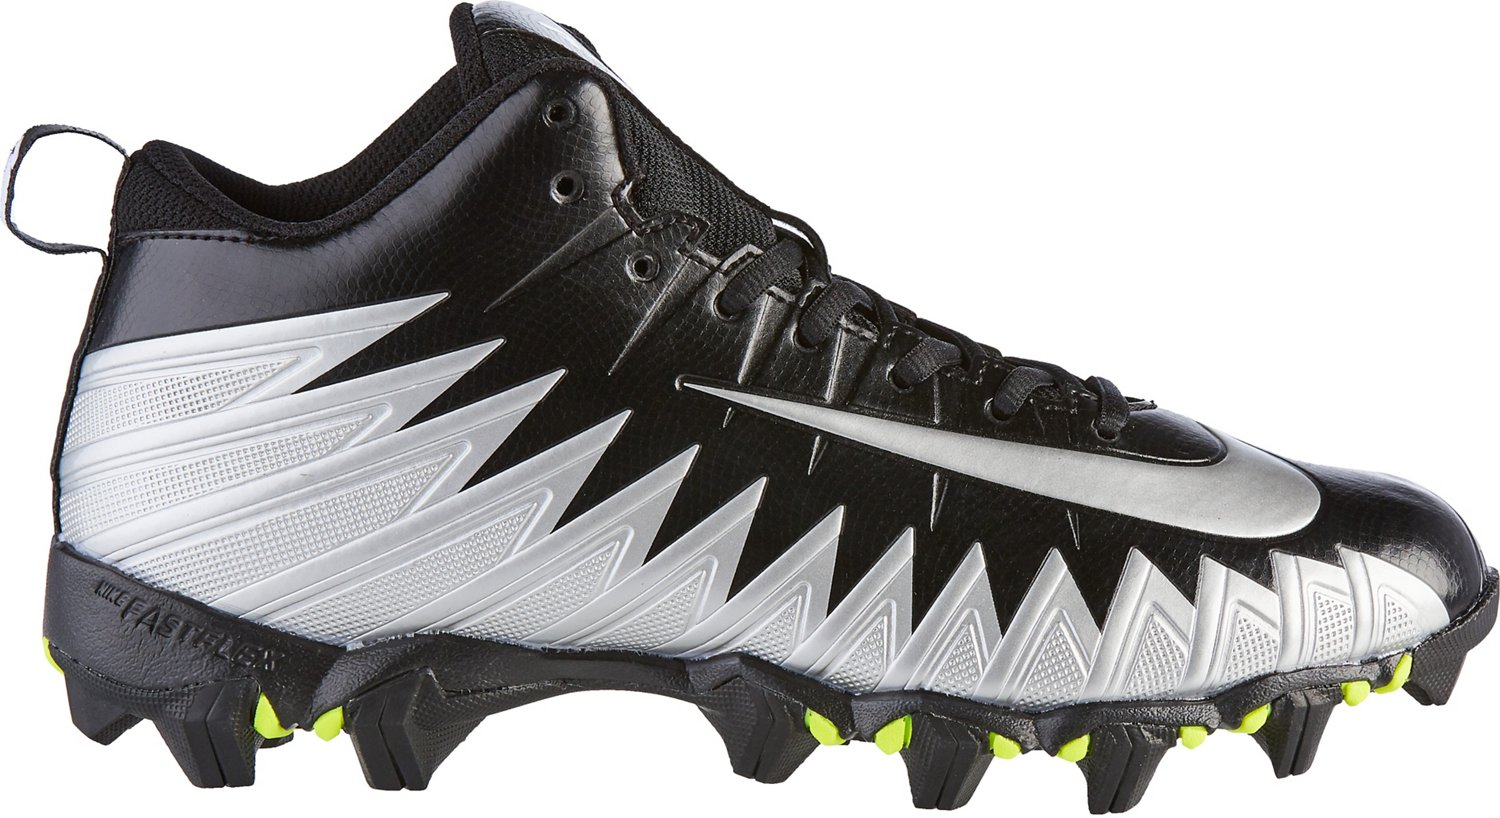 Youth Football Academy Academy Youth CleatsShoesamp; CleatsShoesamp; Football Football doeCBrxW